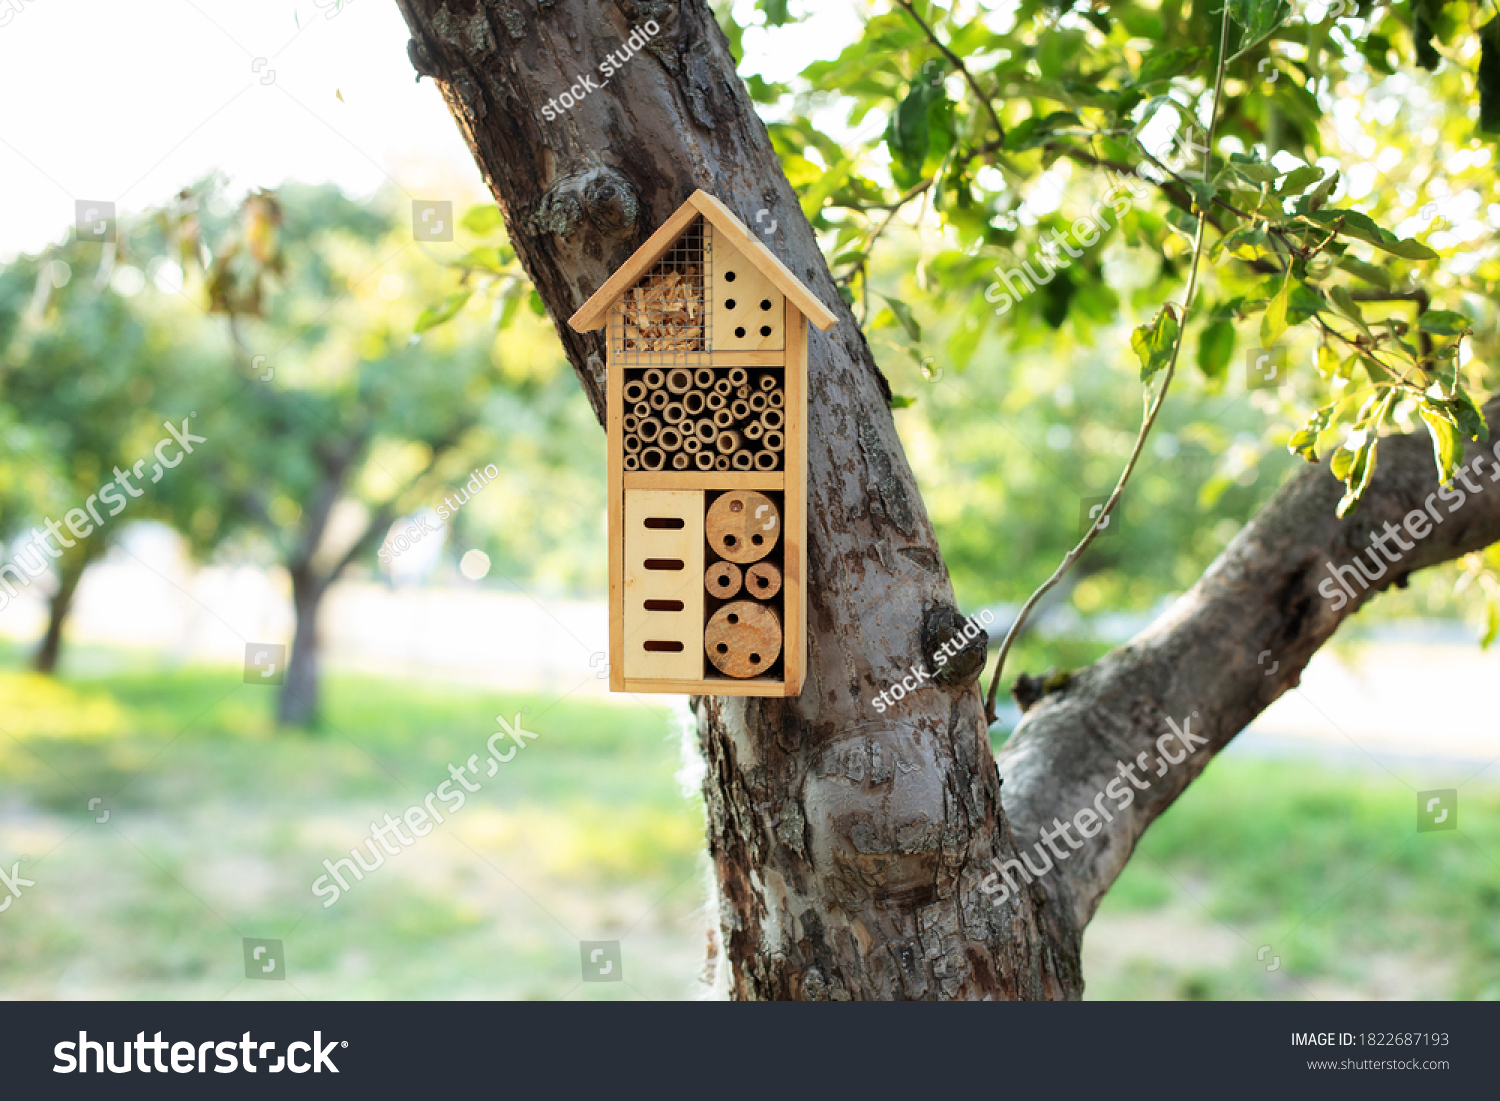 Decorative Insect house with compartments and natural components in a summer garden. Wooden insect house decorative bug hotel, ladybird and bee home for butterfly hibernation and ecological gardening. #1822687193